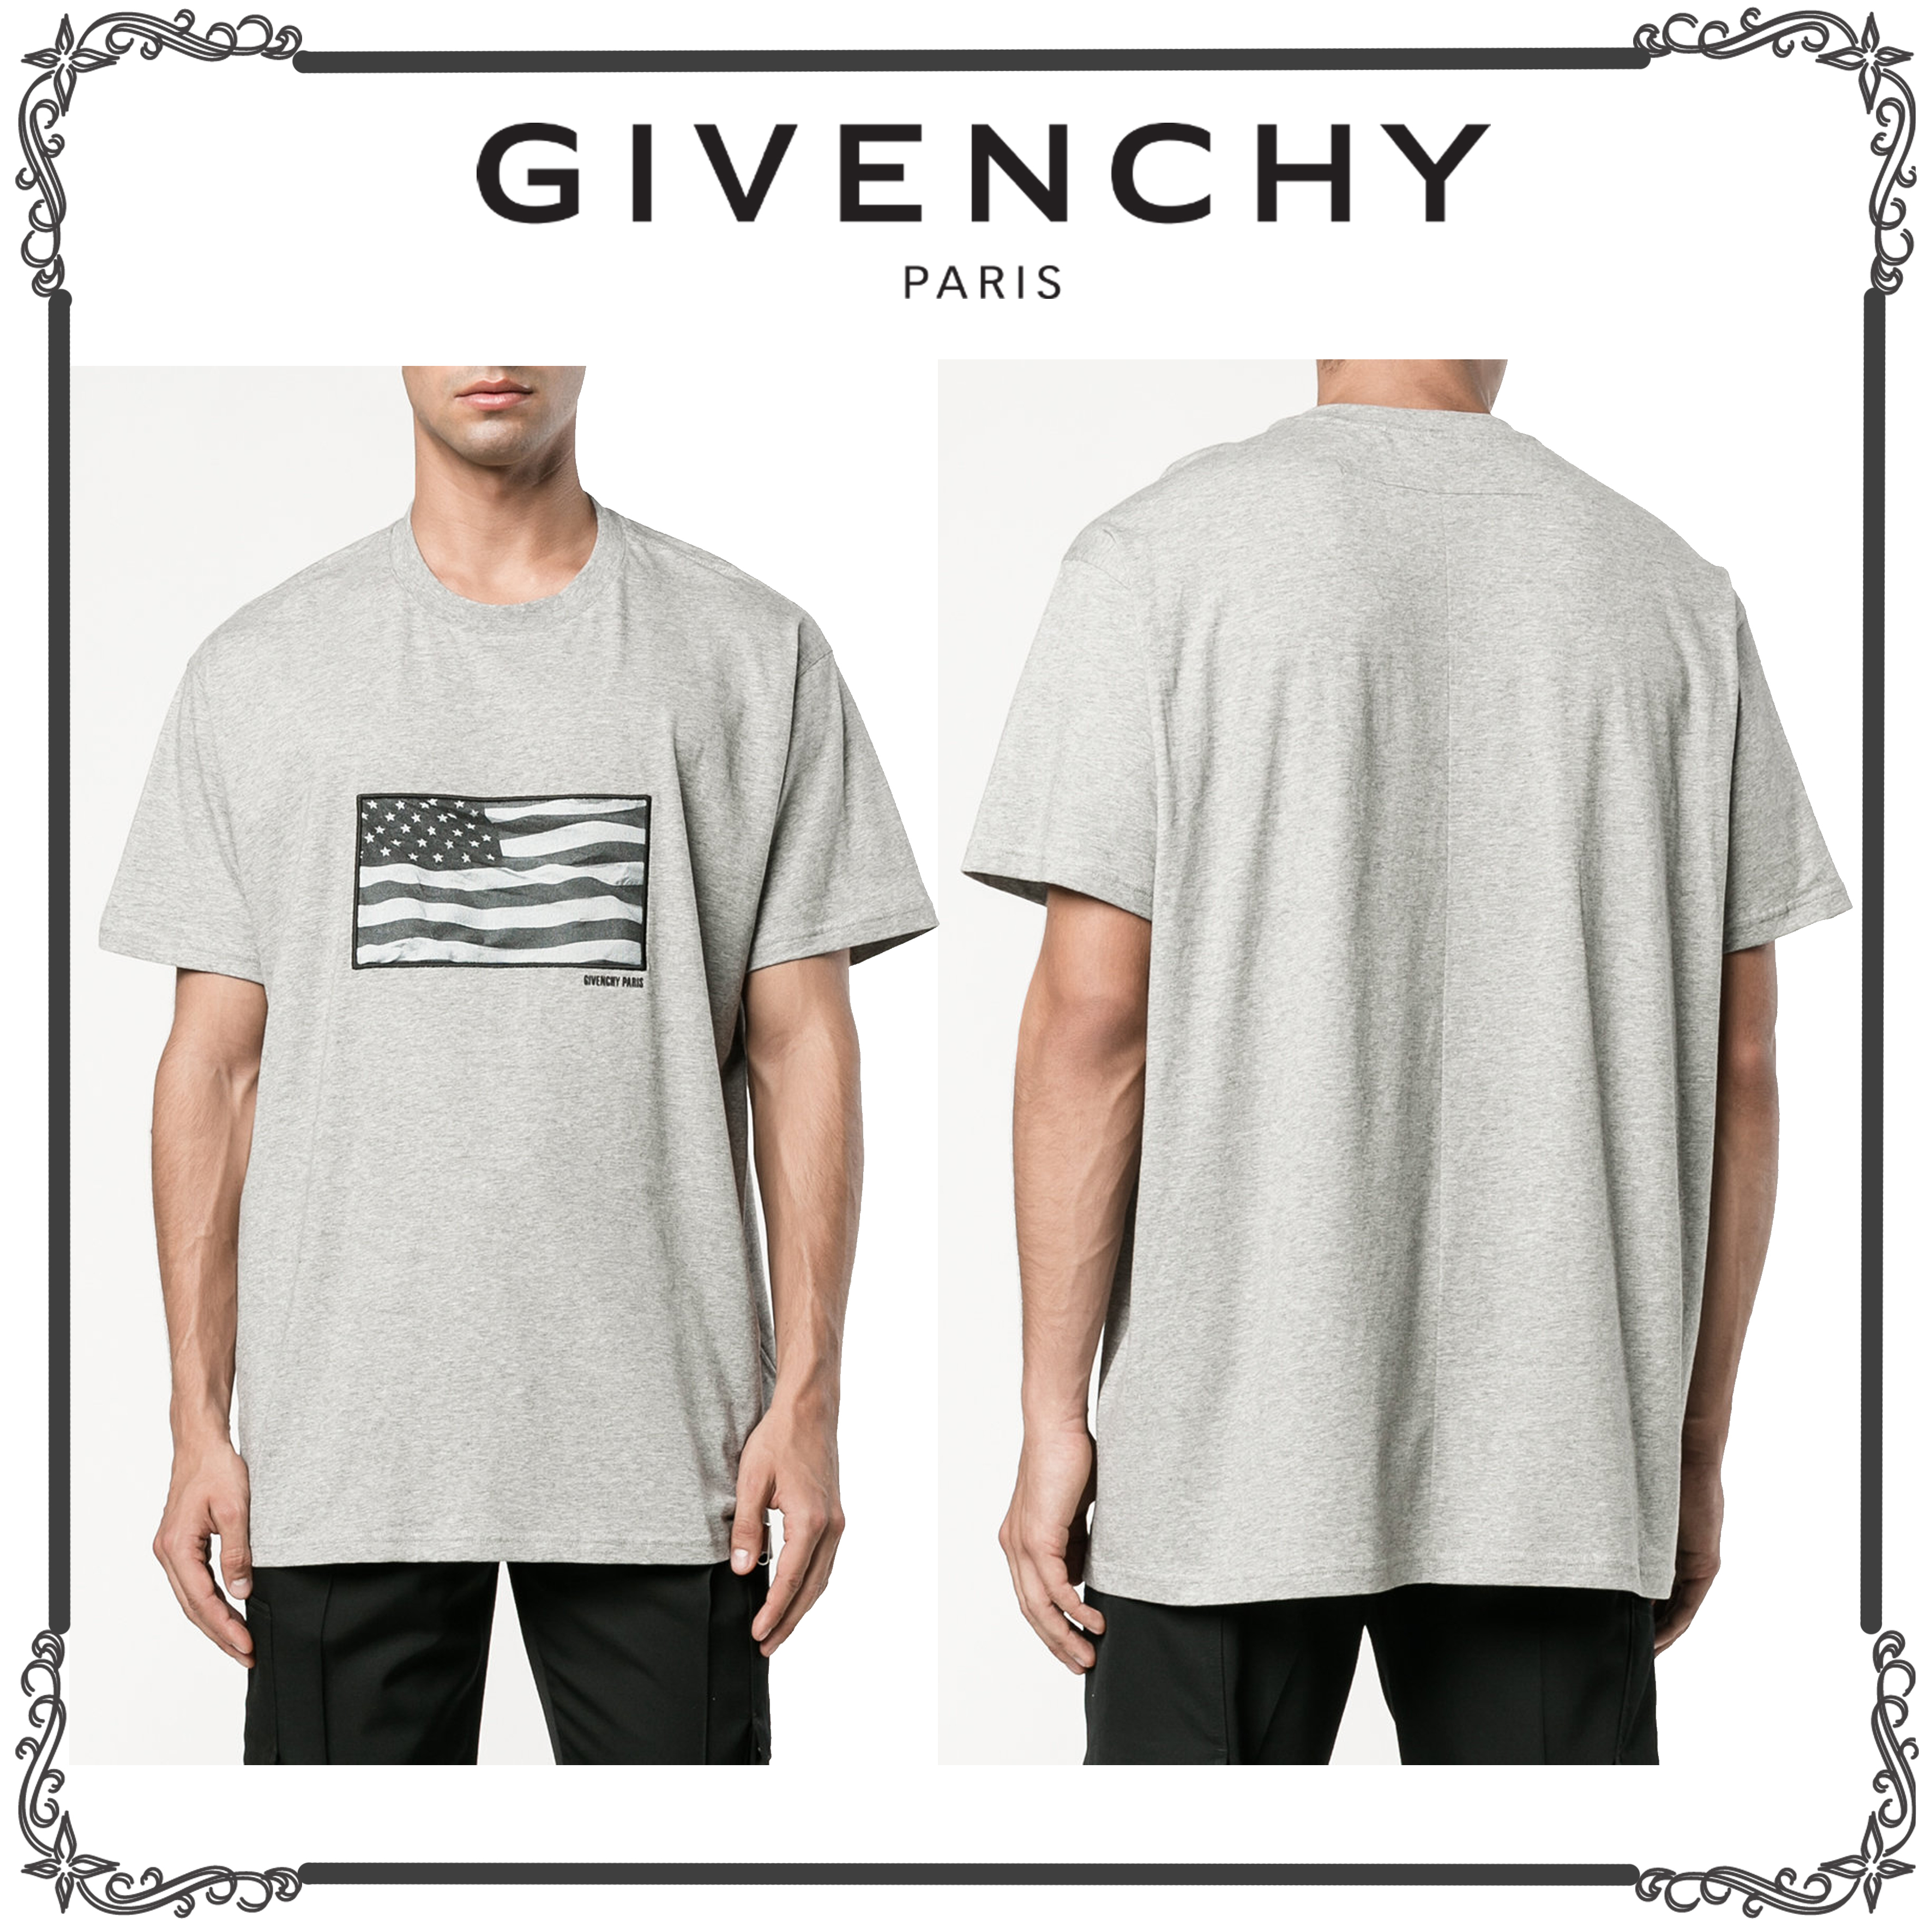 GIVENCHY★フラッグプリント Tシャツ★グレー